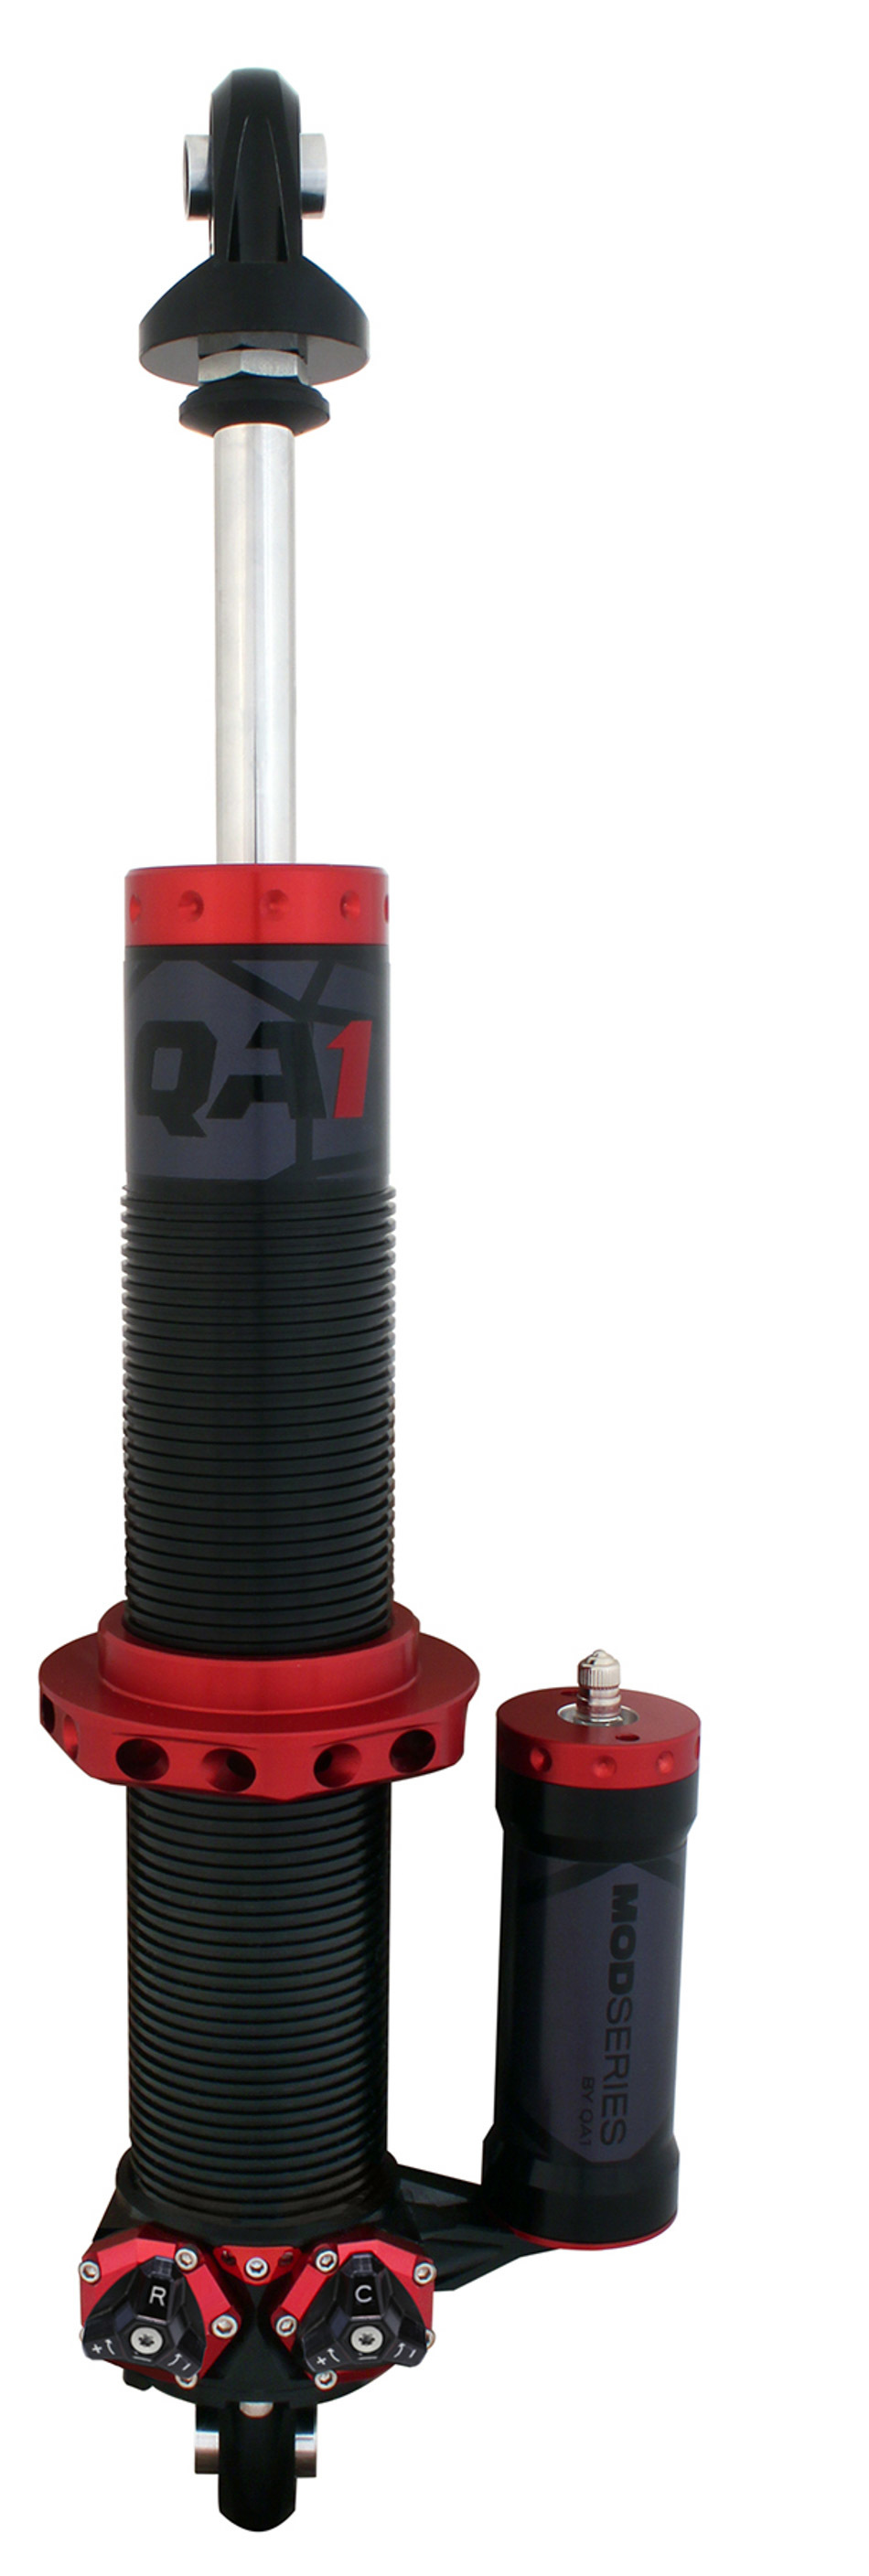 QA1 M421PR Shock, Mod Series, Twintube, 10.63 in Compressed / 15.00 in Extended, 2.00 in OD, Double Adjustable, Aluminum, Black Anodize, Each